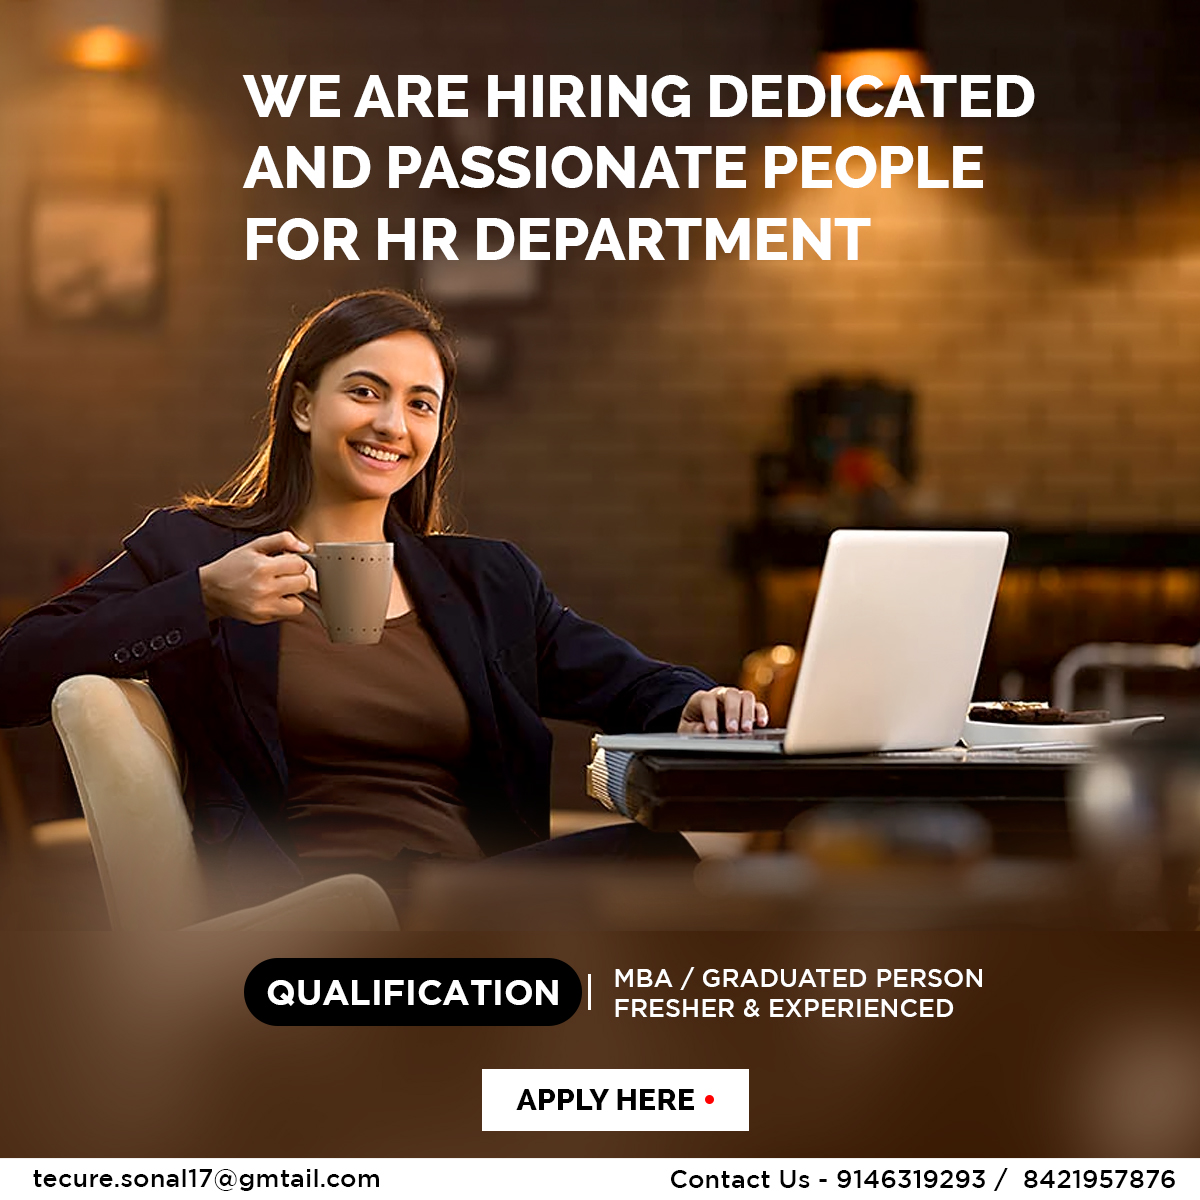 Looking for people for HR Department